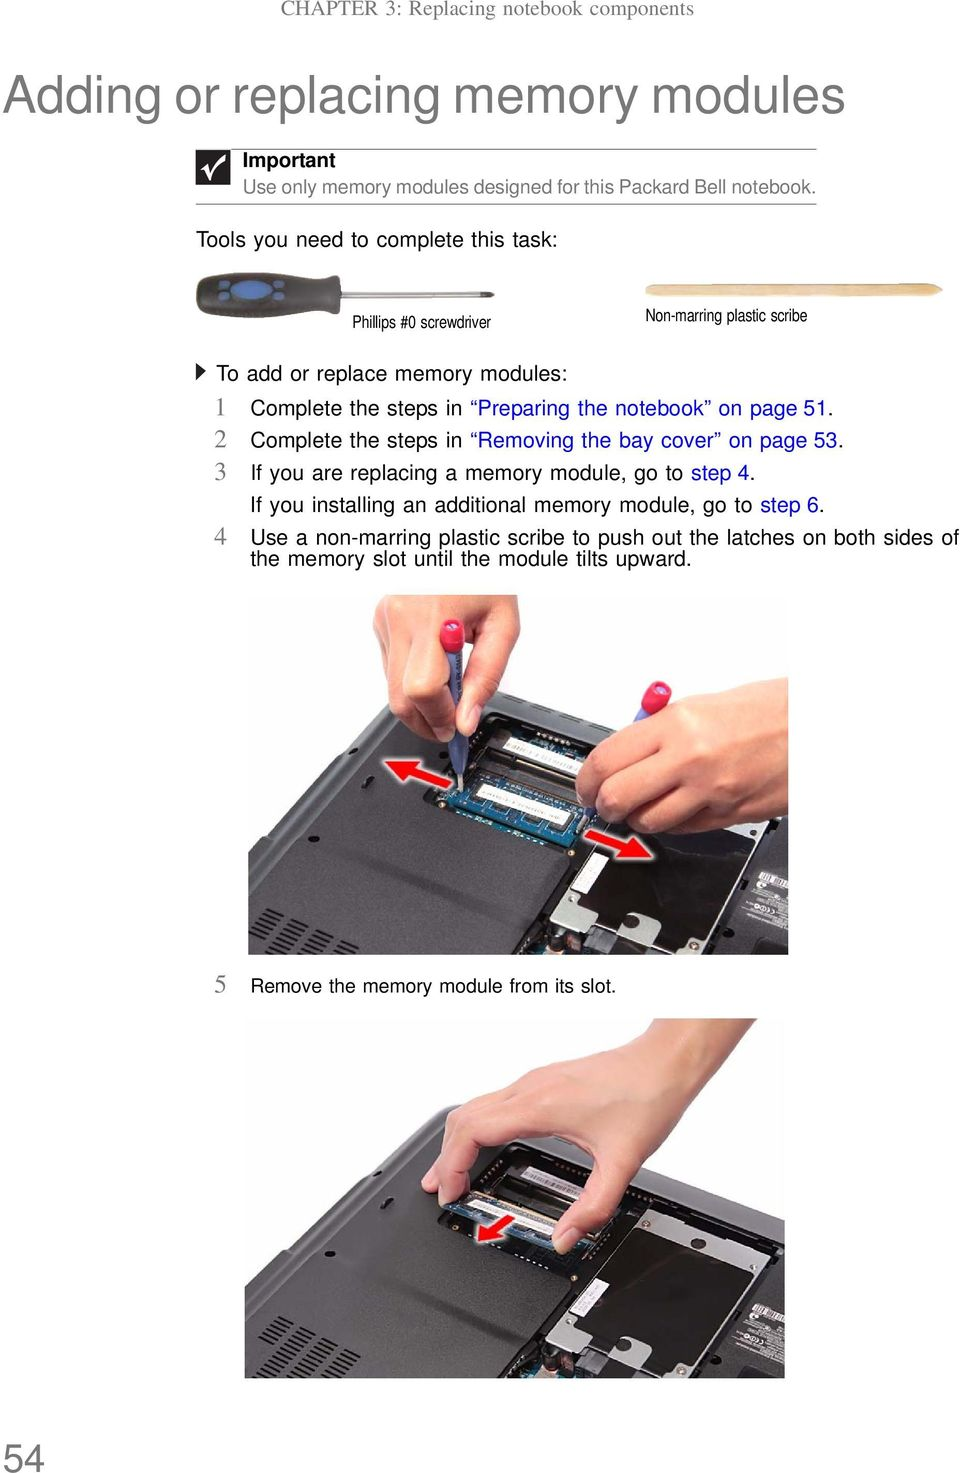 notebook on page 51. 2 Complete the steps in Removing the bay cover on page 53. 3 If you are replacing a memory module, go to step 4.